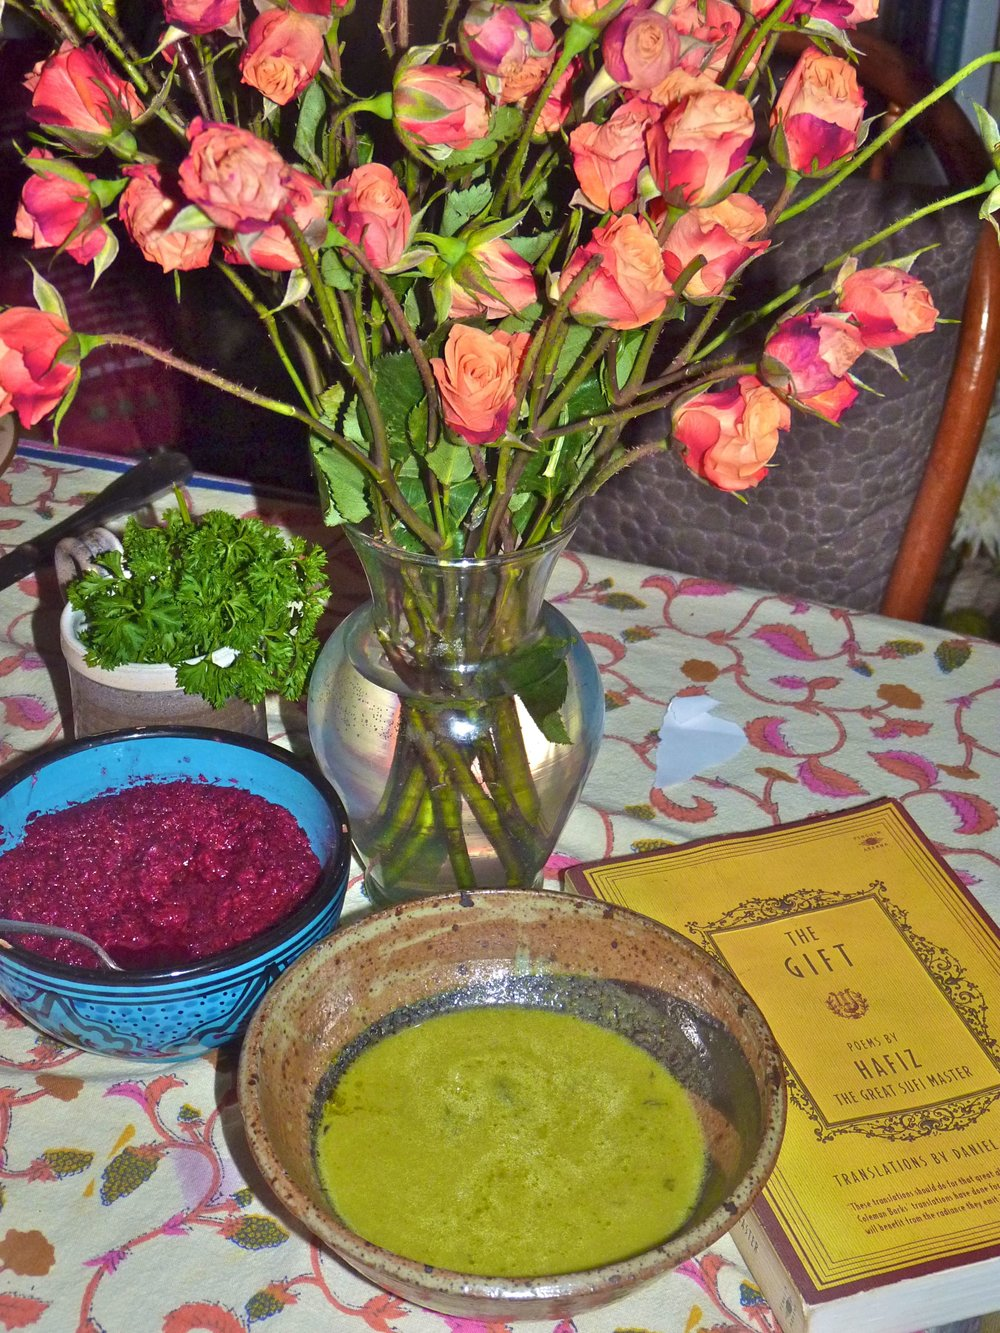 Green pea and asparagus soup, beet maror, karpas and of course, Hafiz!